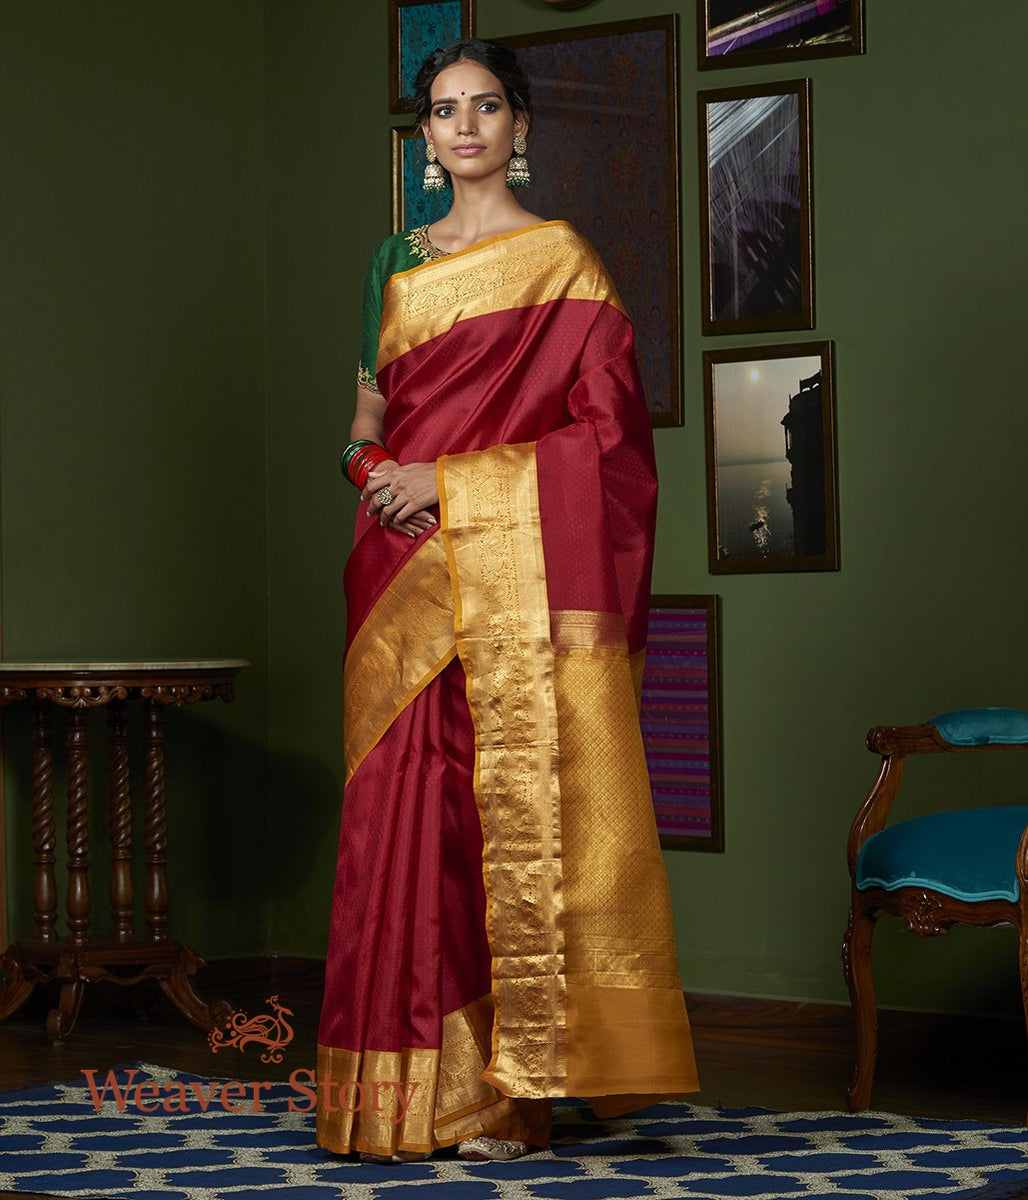 Handwoven Maroon Kanjivaram Saree with Mustard Annapakshi Border